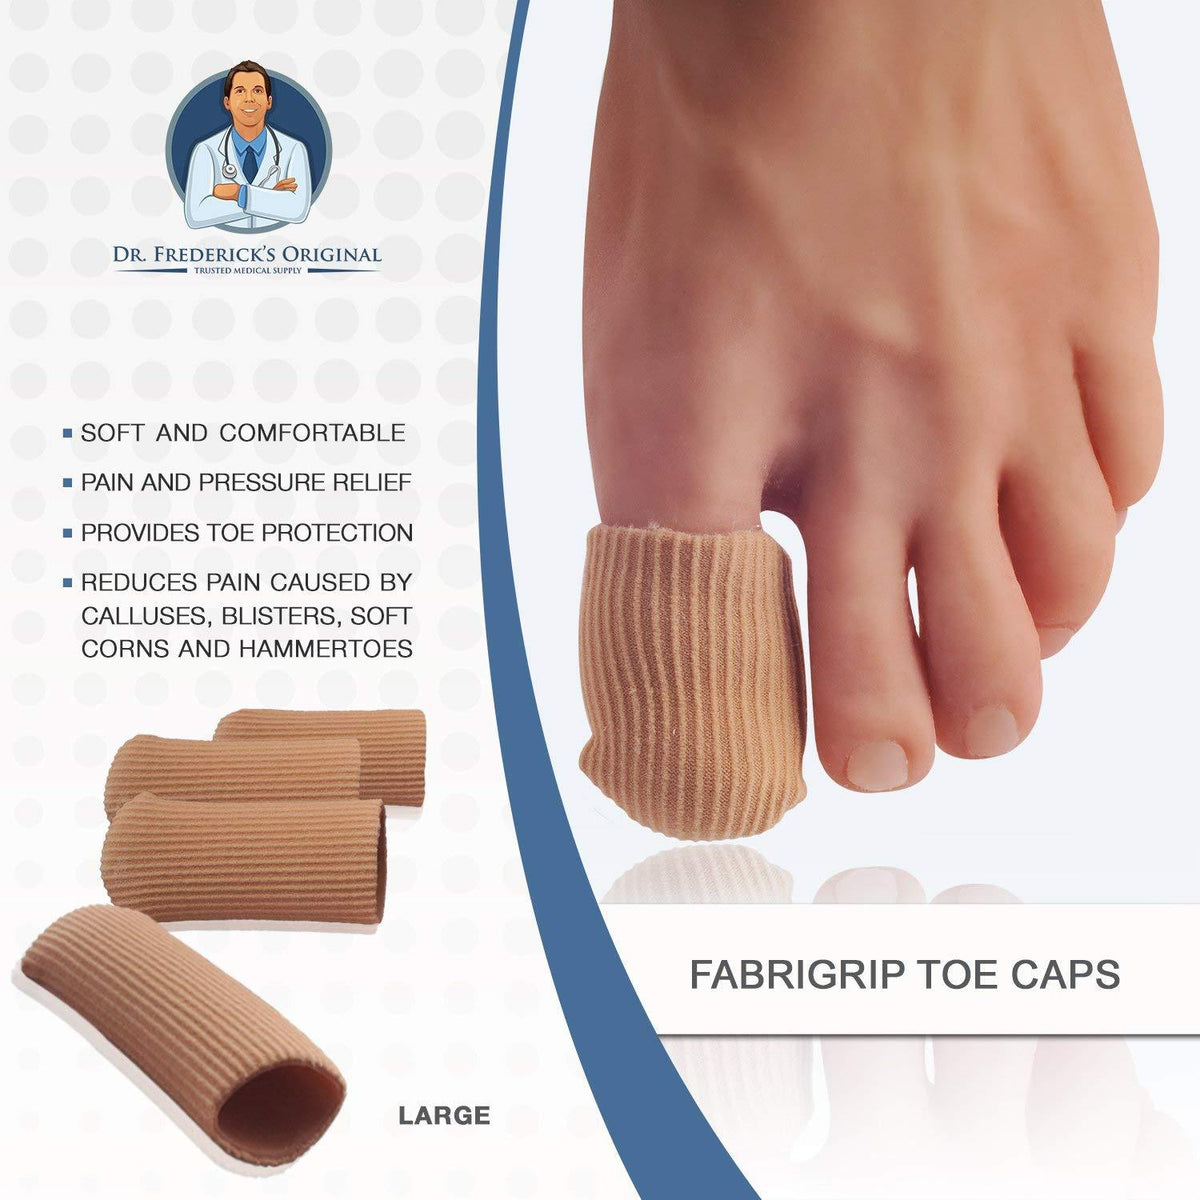 Dr. Frederick's Original Fabrigrip Toe Caps -- 4 Pieces - for Corns, Calluses, Blisters, and Ingrown Toenails Foot Pain Dr. Frederick's Original